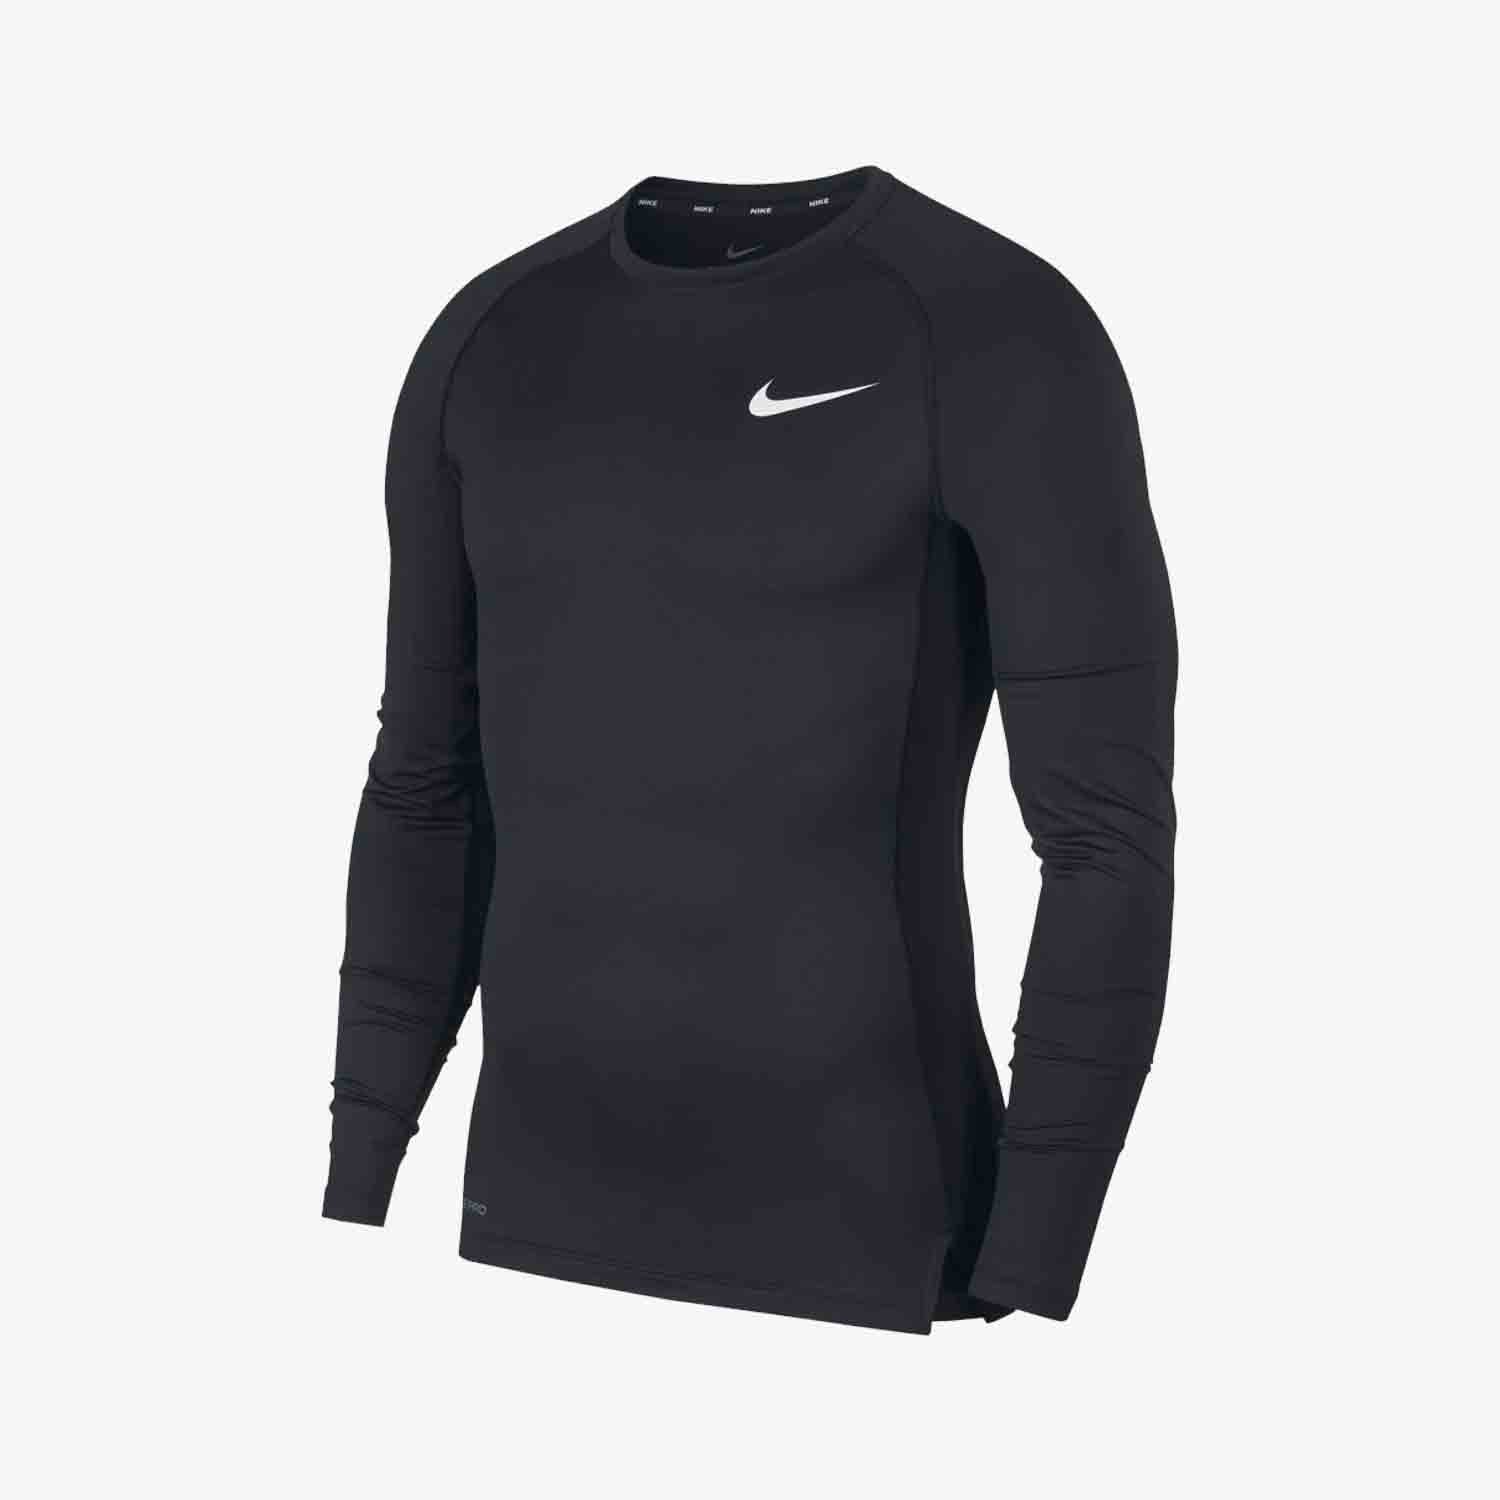 Men's Pro Long-Sleeve Compression Top